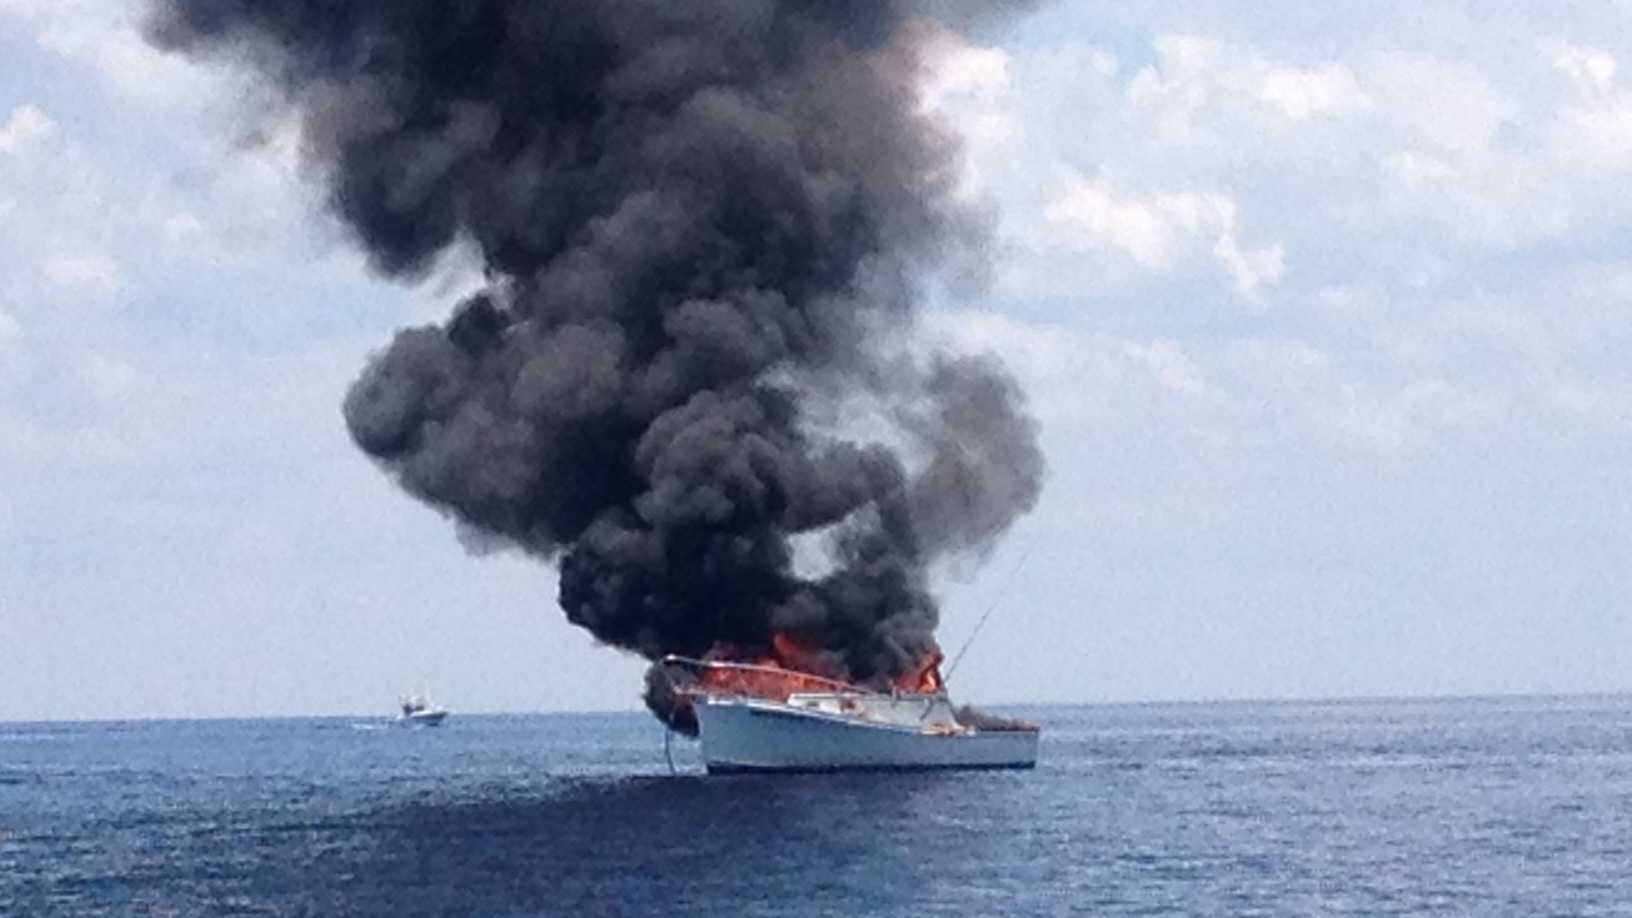 This boat caught fire and sank Sunday afternoon.